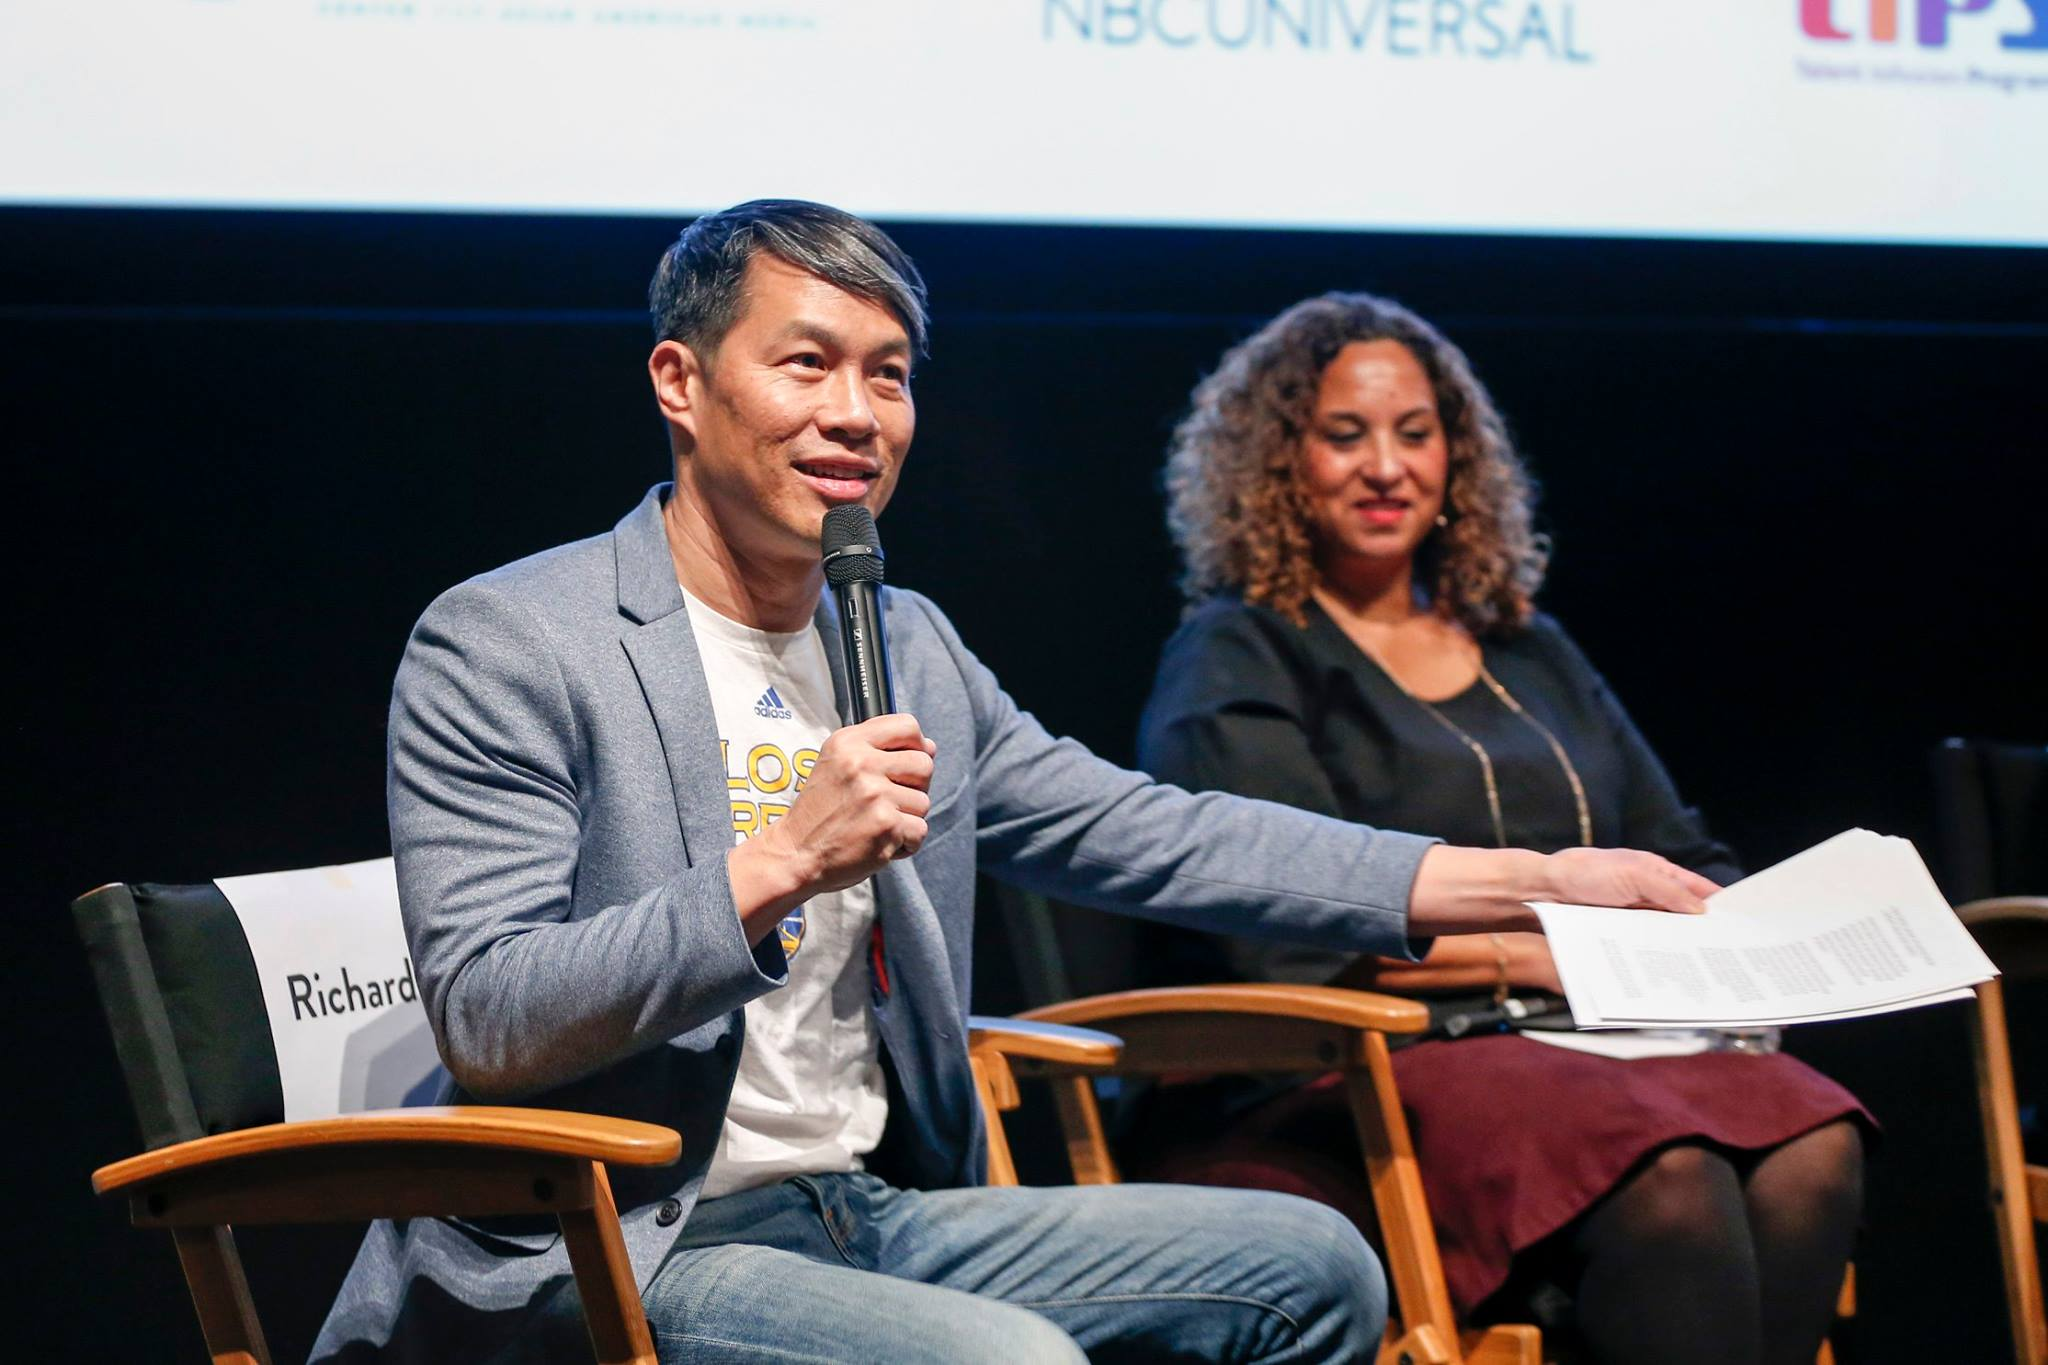 Moderator Richard Lui, MSNBC anchor, with panelist Karen Horne, Senior Vice President, Programming Talent Development and Inclusion for NBC Entertainment and Universal Television Studios. Photo by Rich Polk/Getty Images.